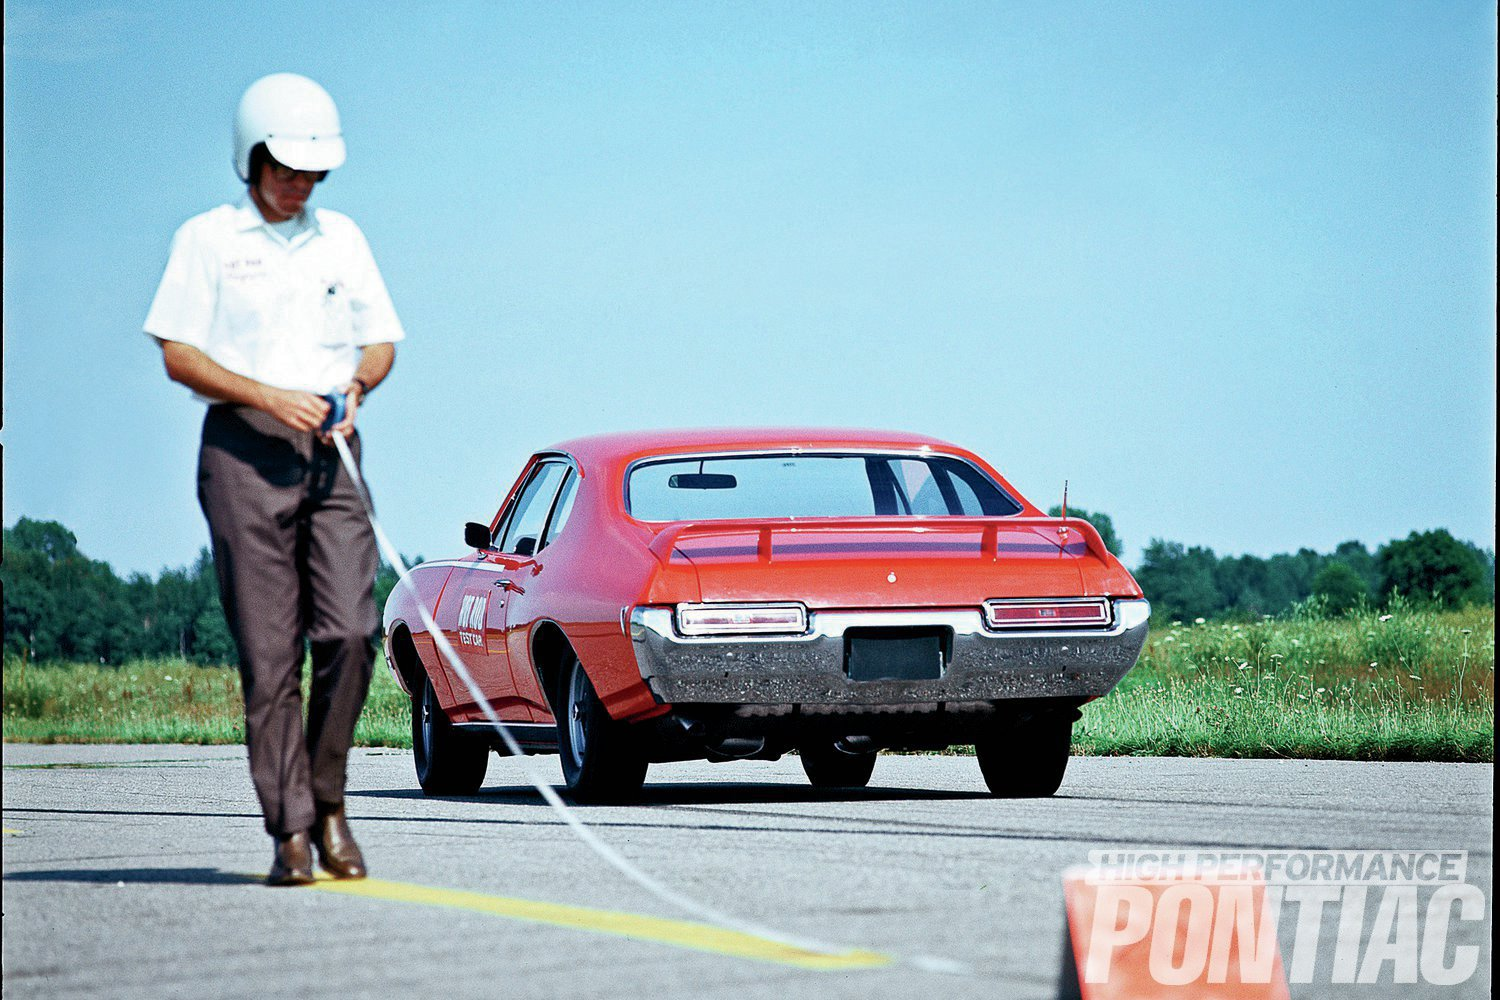 Hot Rod magazine editors measure braking distance for its story. Notice that this Judge prototype clearly uses standard Tempest taillights, but also has a side vent (wing) window, suggesting that it's actually a '68 model-year vehicle in sedan styling.